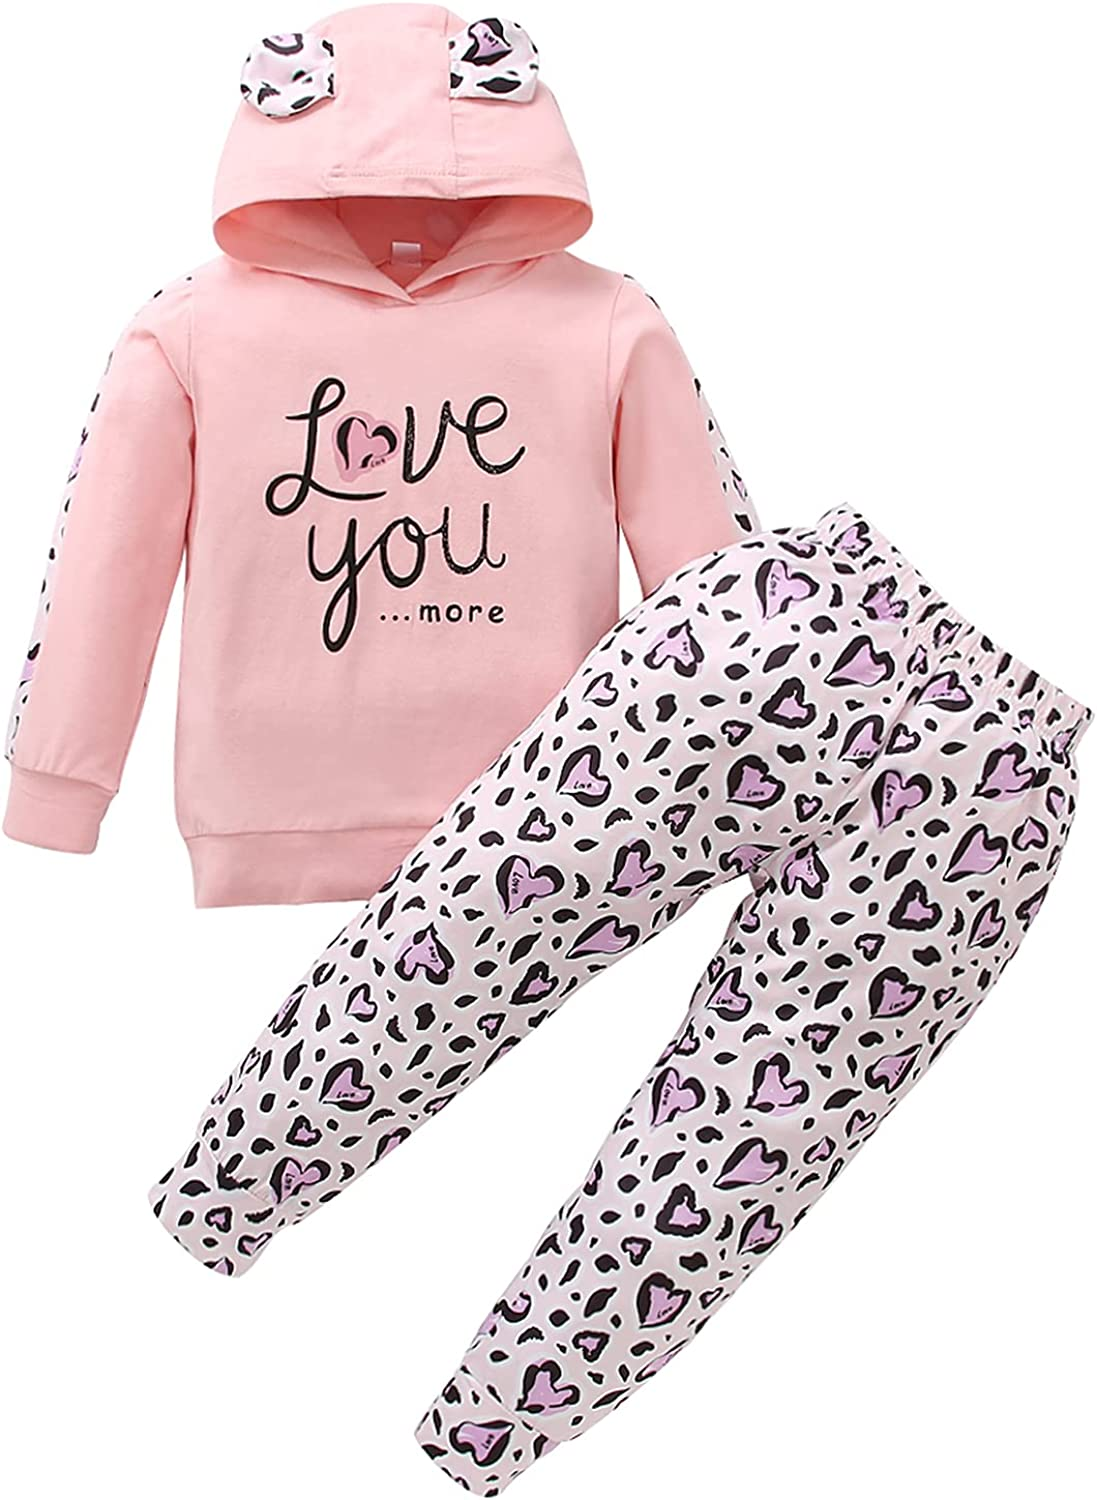 3Pcs Casual Outfit Toddler Baby Girl Clothes Set Letter Print Long Sleeve Ruffle Hoodies+Leopard Pants+Headband